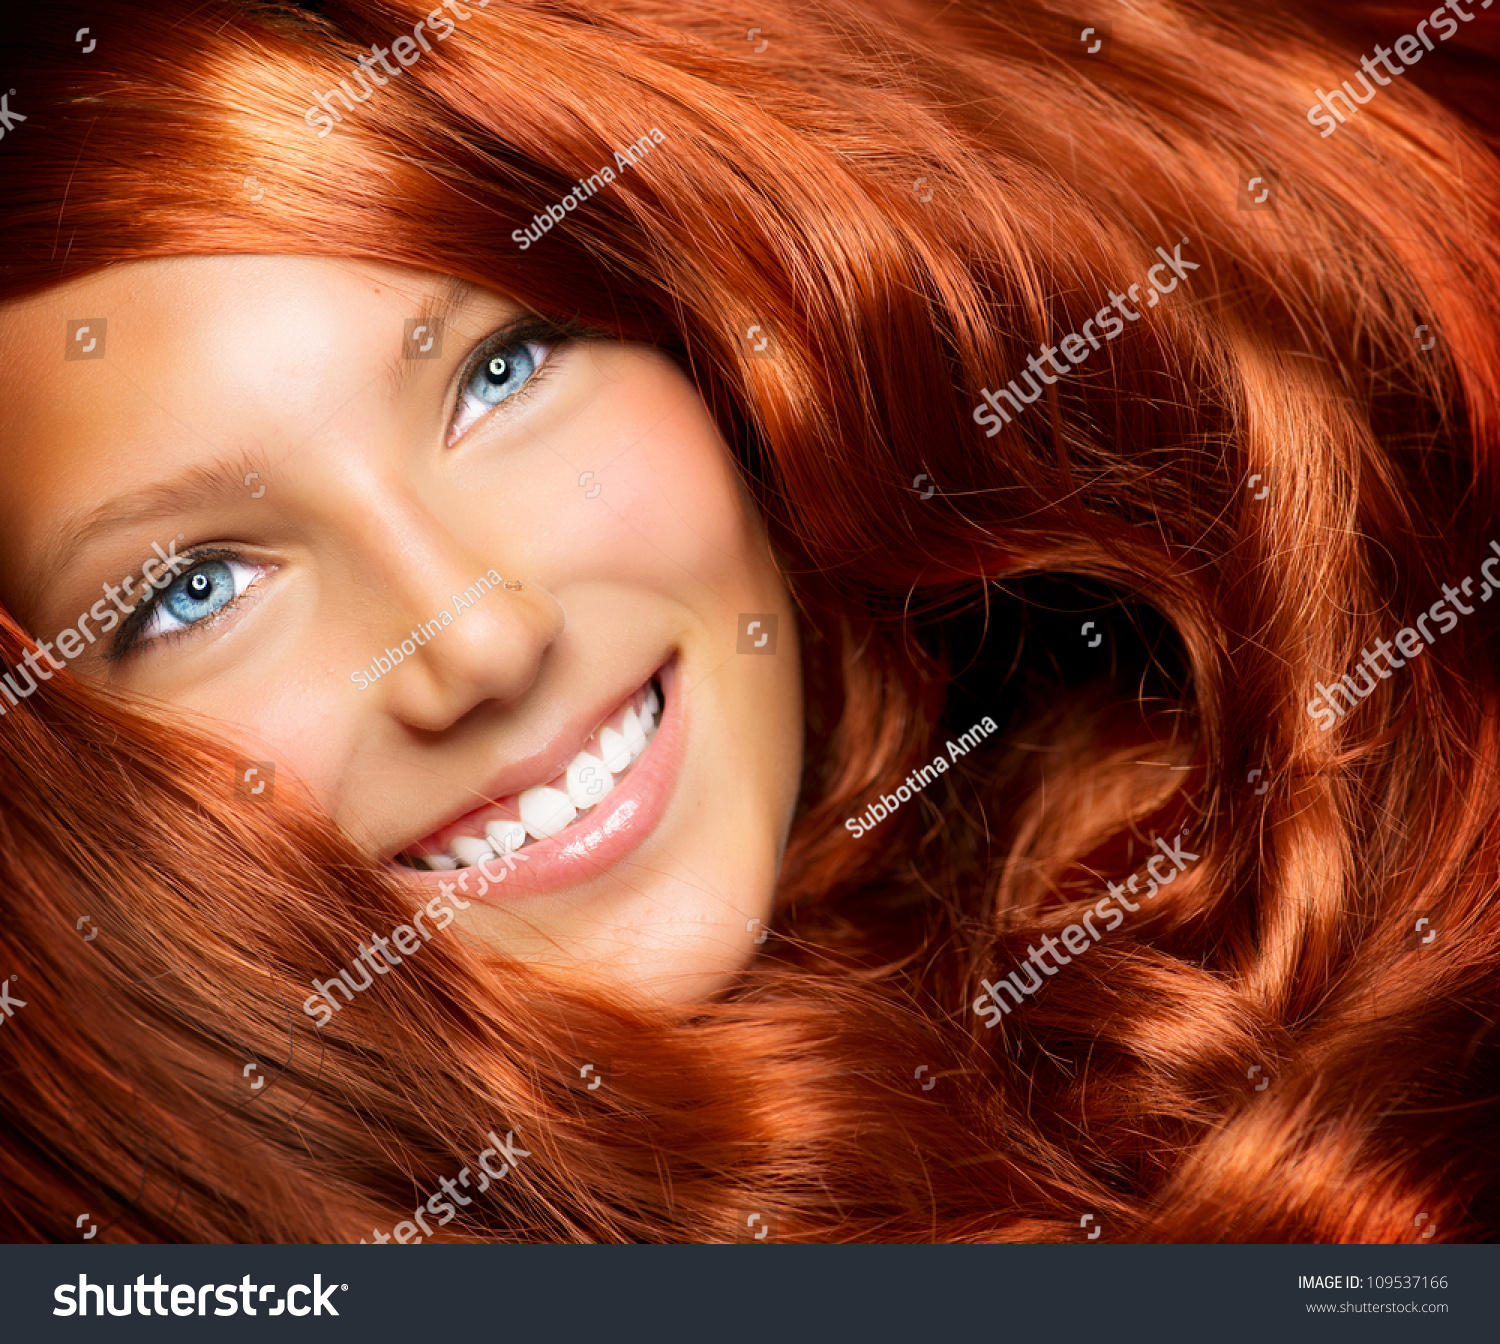 Hair Beauty Healthy Long Red Curly Stock Photo Edit Now 109537166